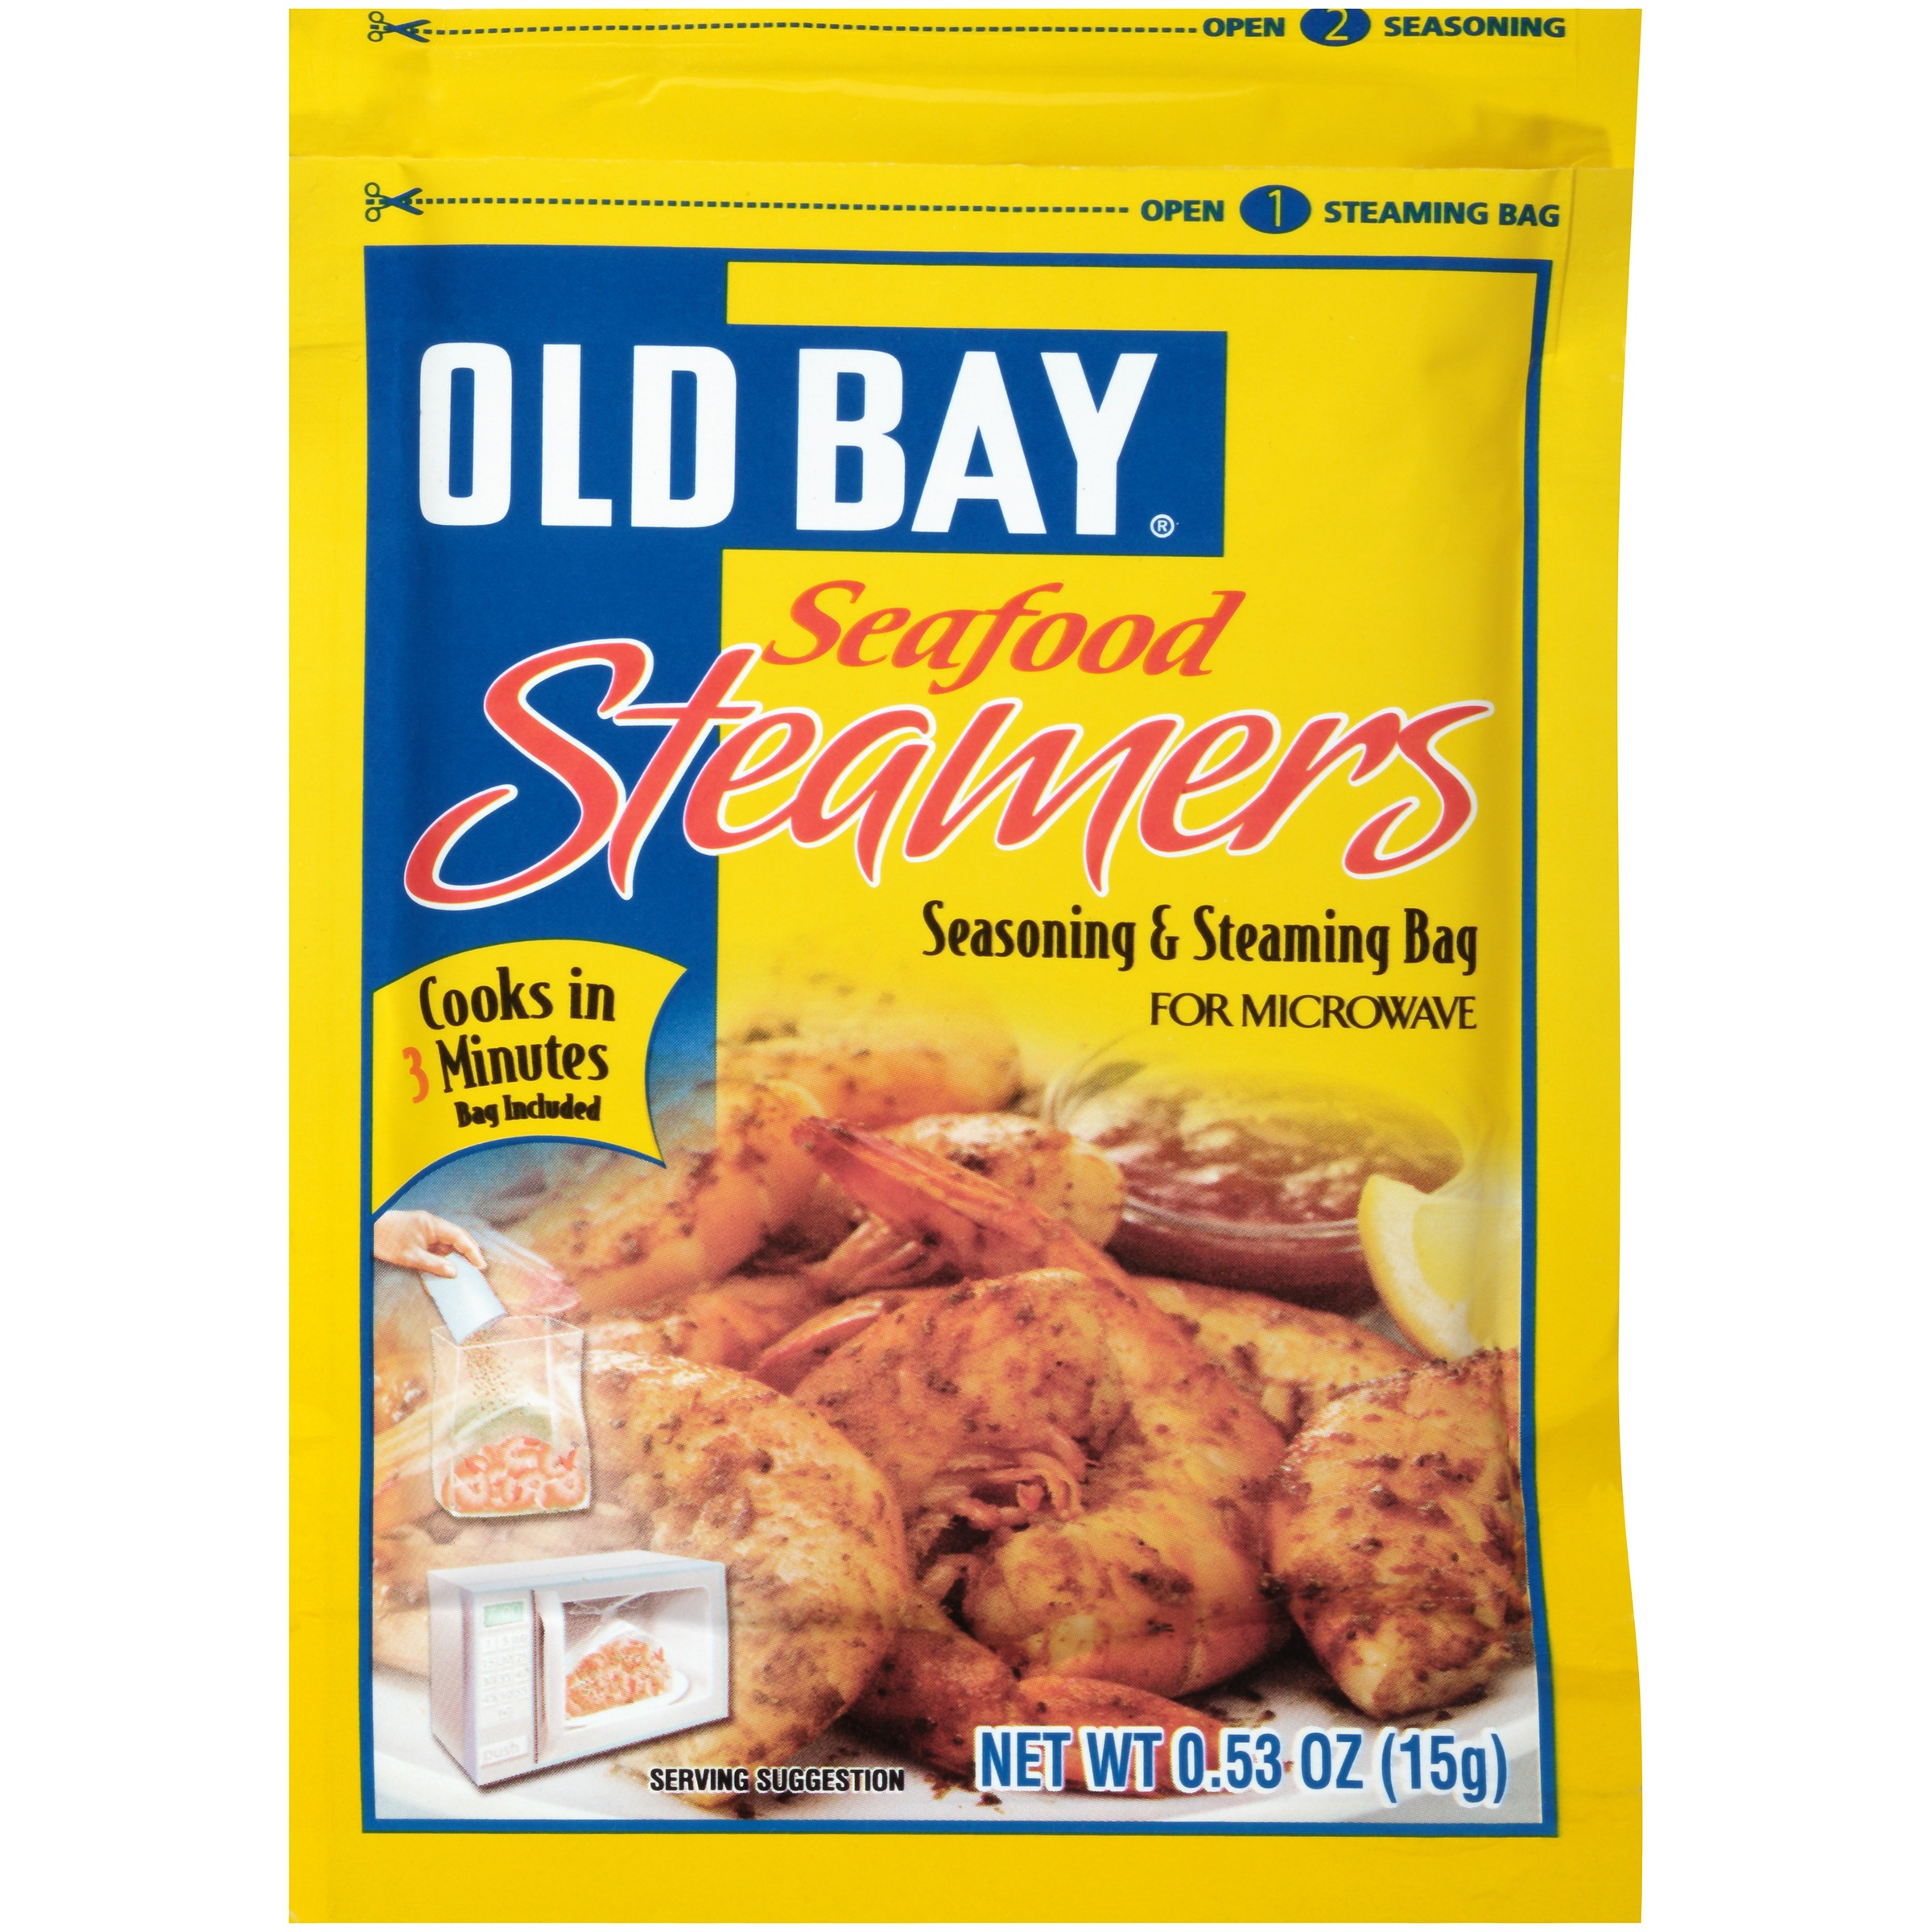 Old Bay Seafood Steamers, 0.53 oz. Packet by McCormick & Co., Inc.